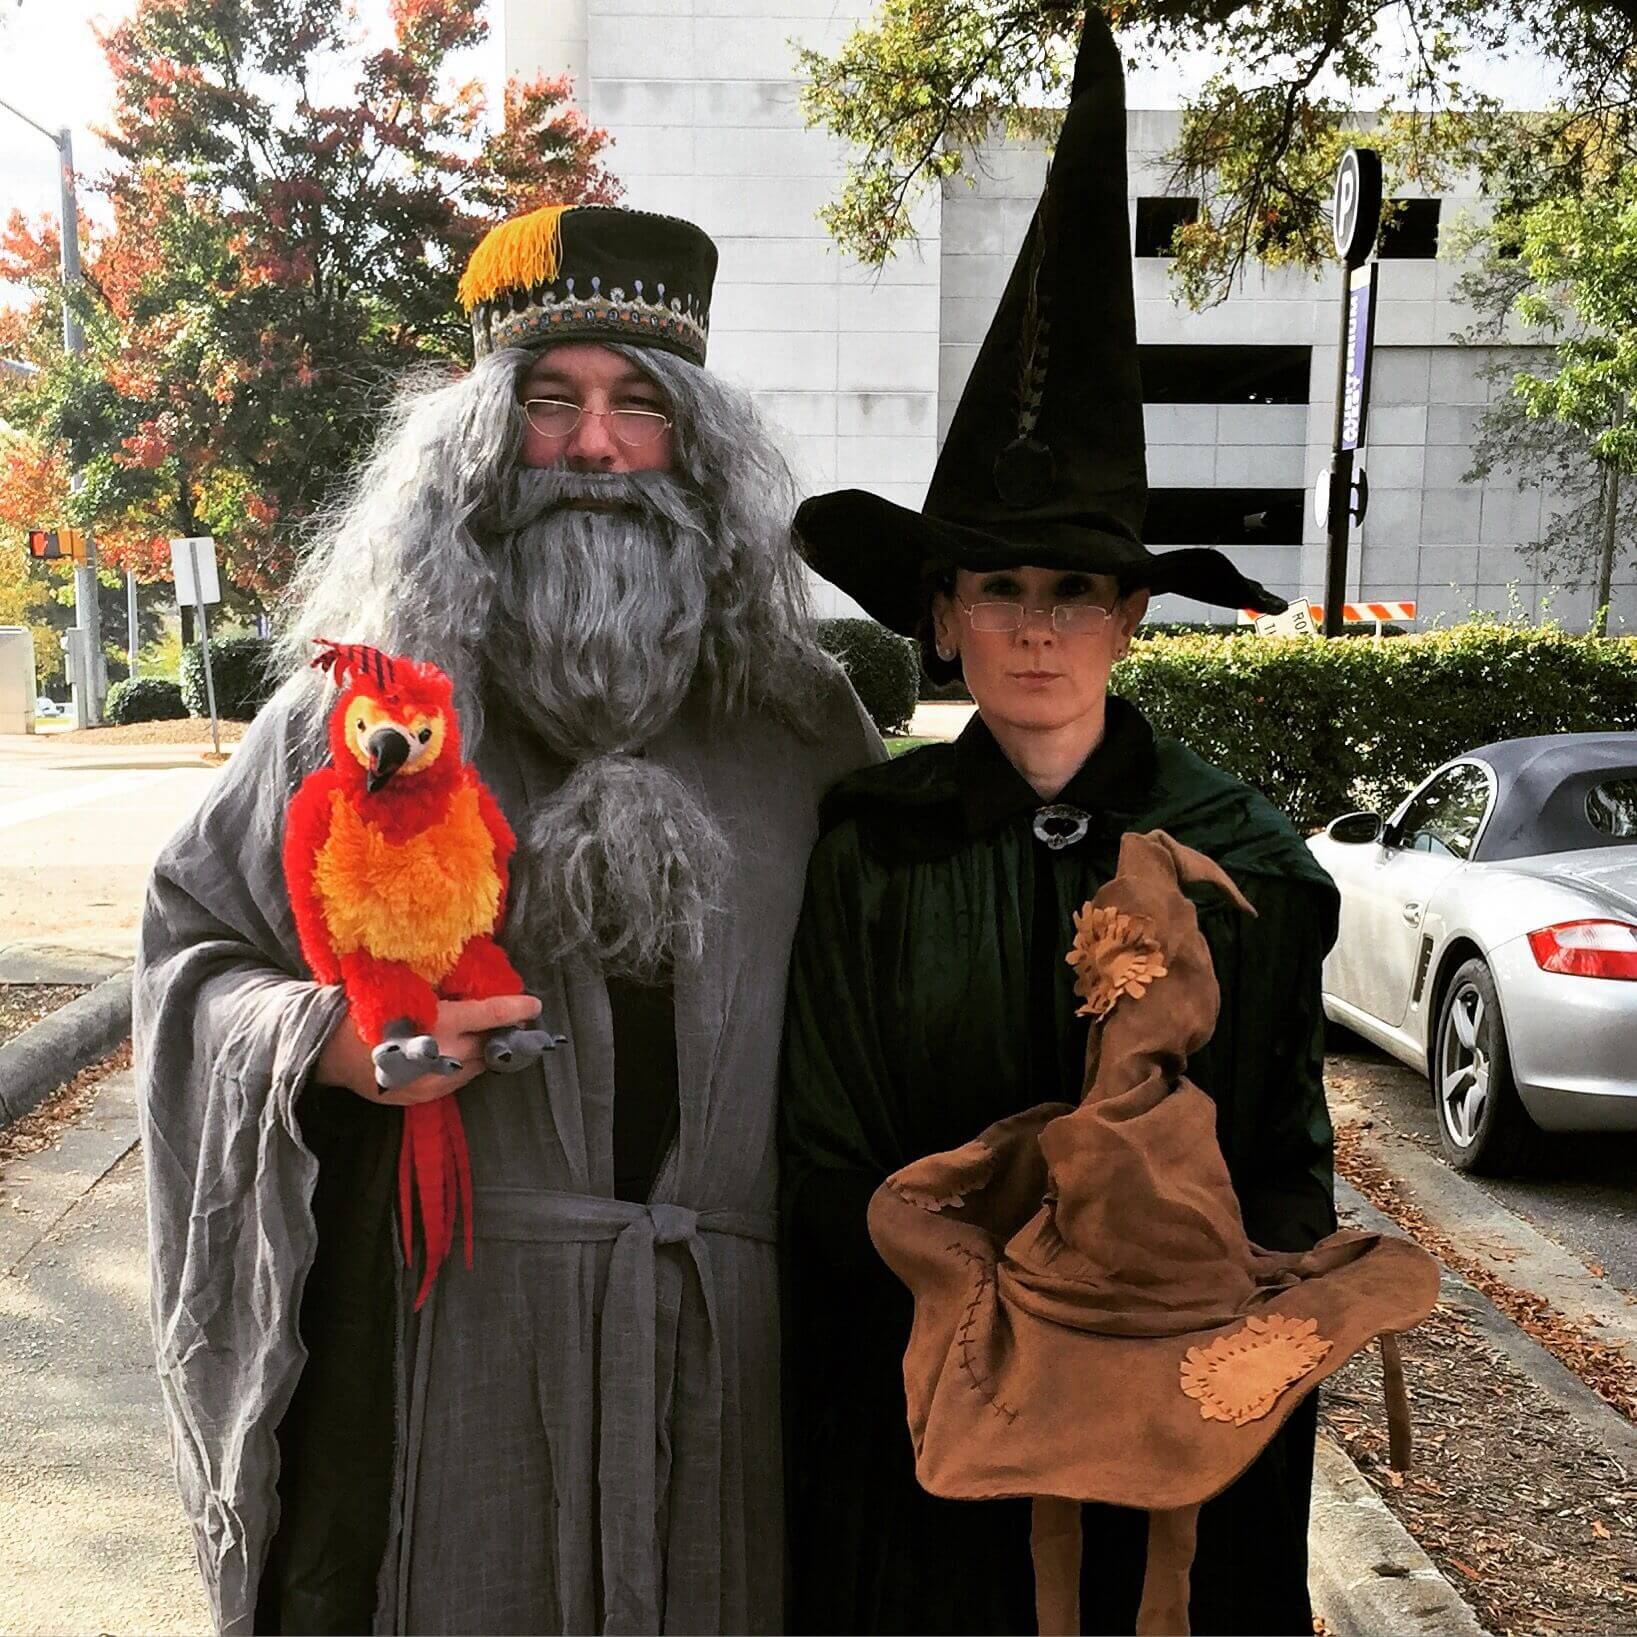 dumbledore macgonagall funny halloween costume for couple